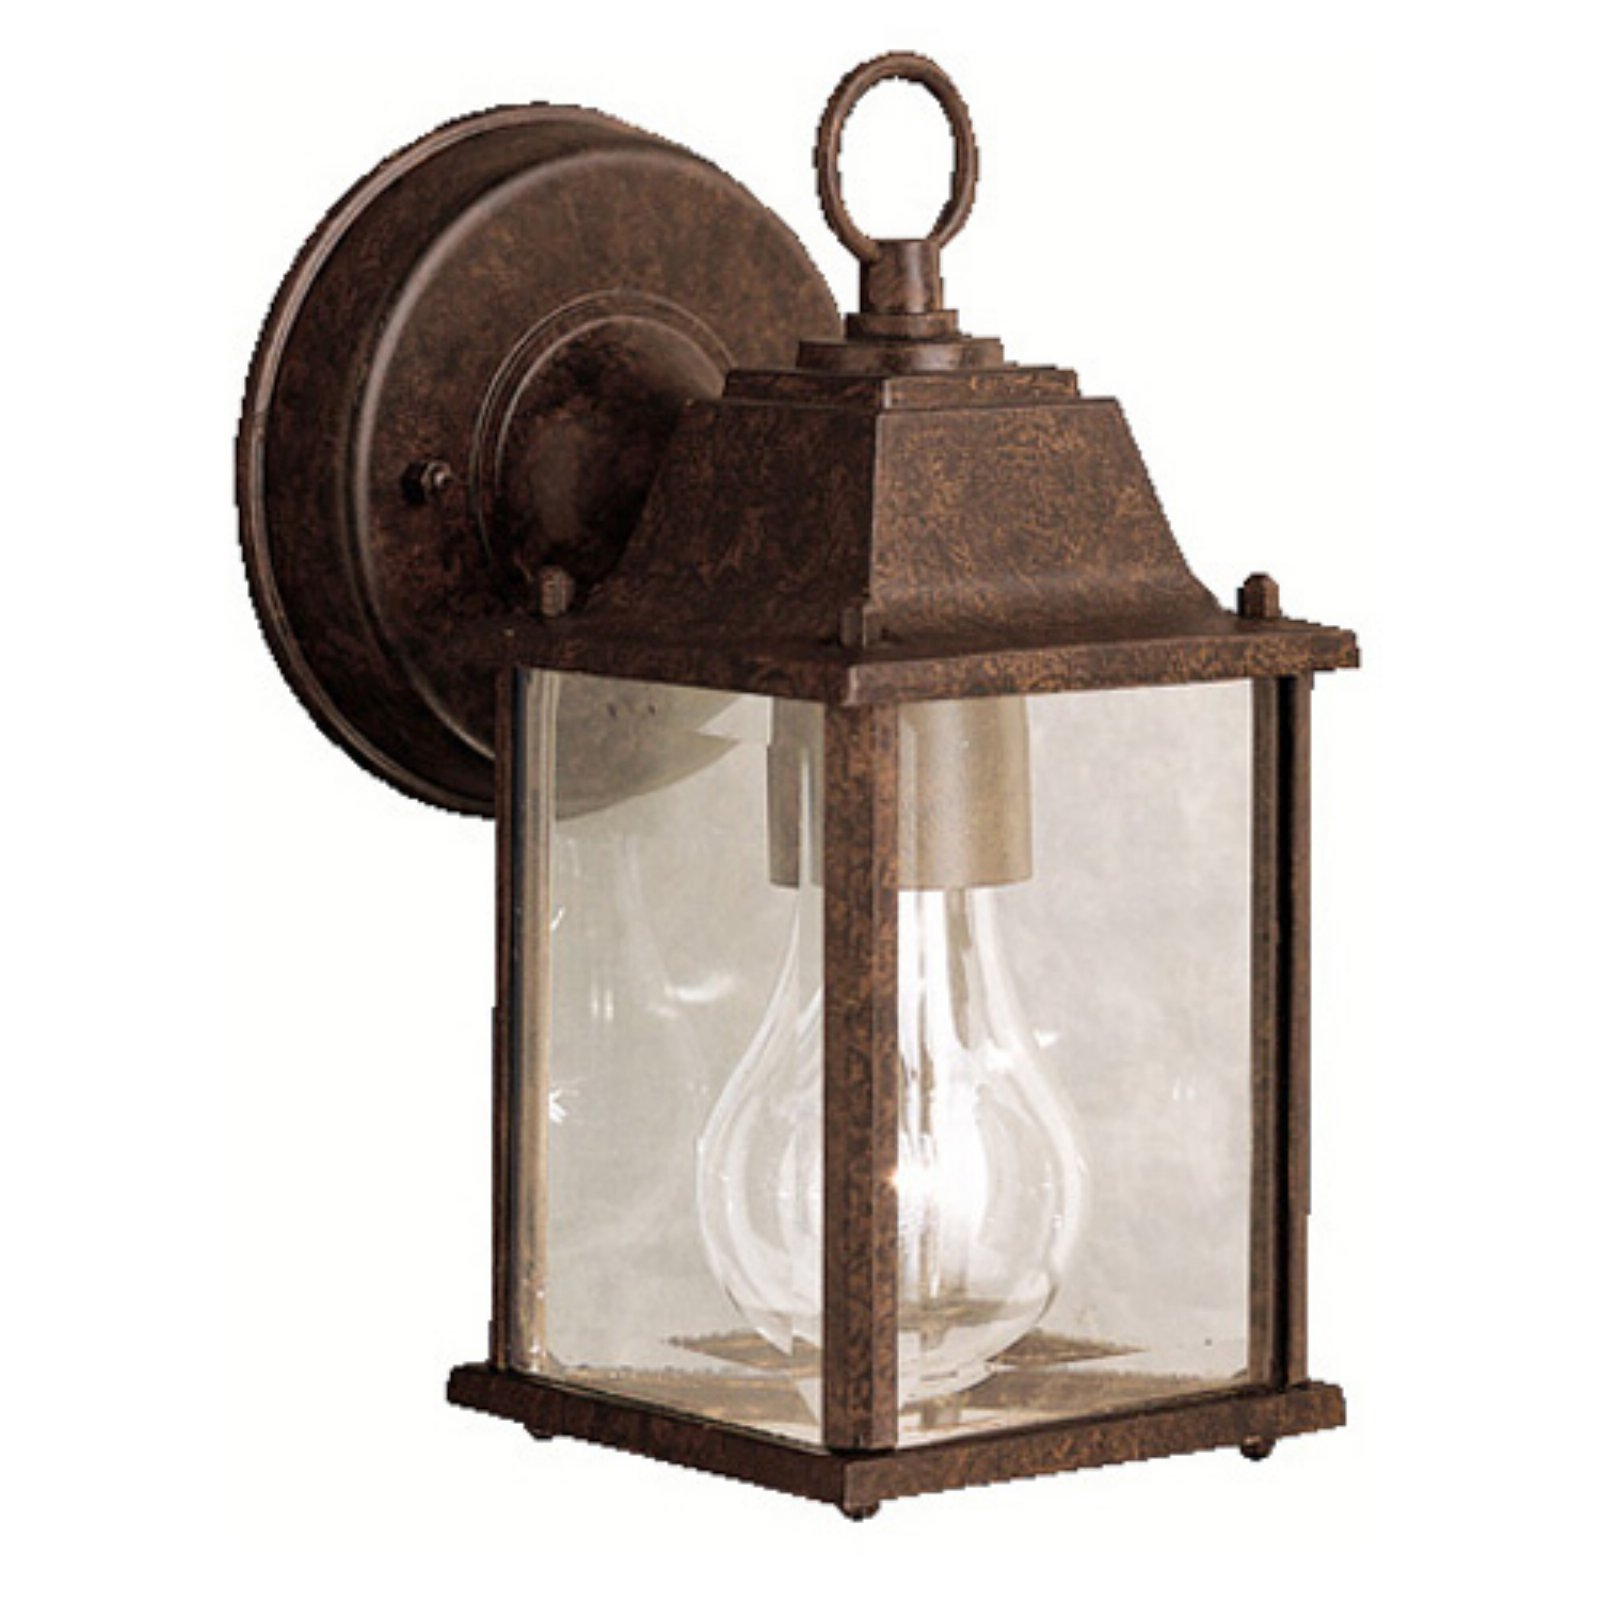 Kichler Barrie 9794L18 Outdoor Wall Light